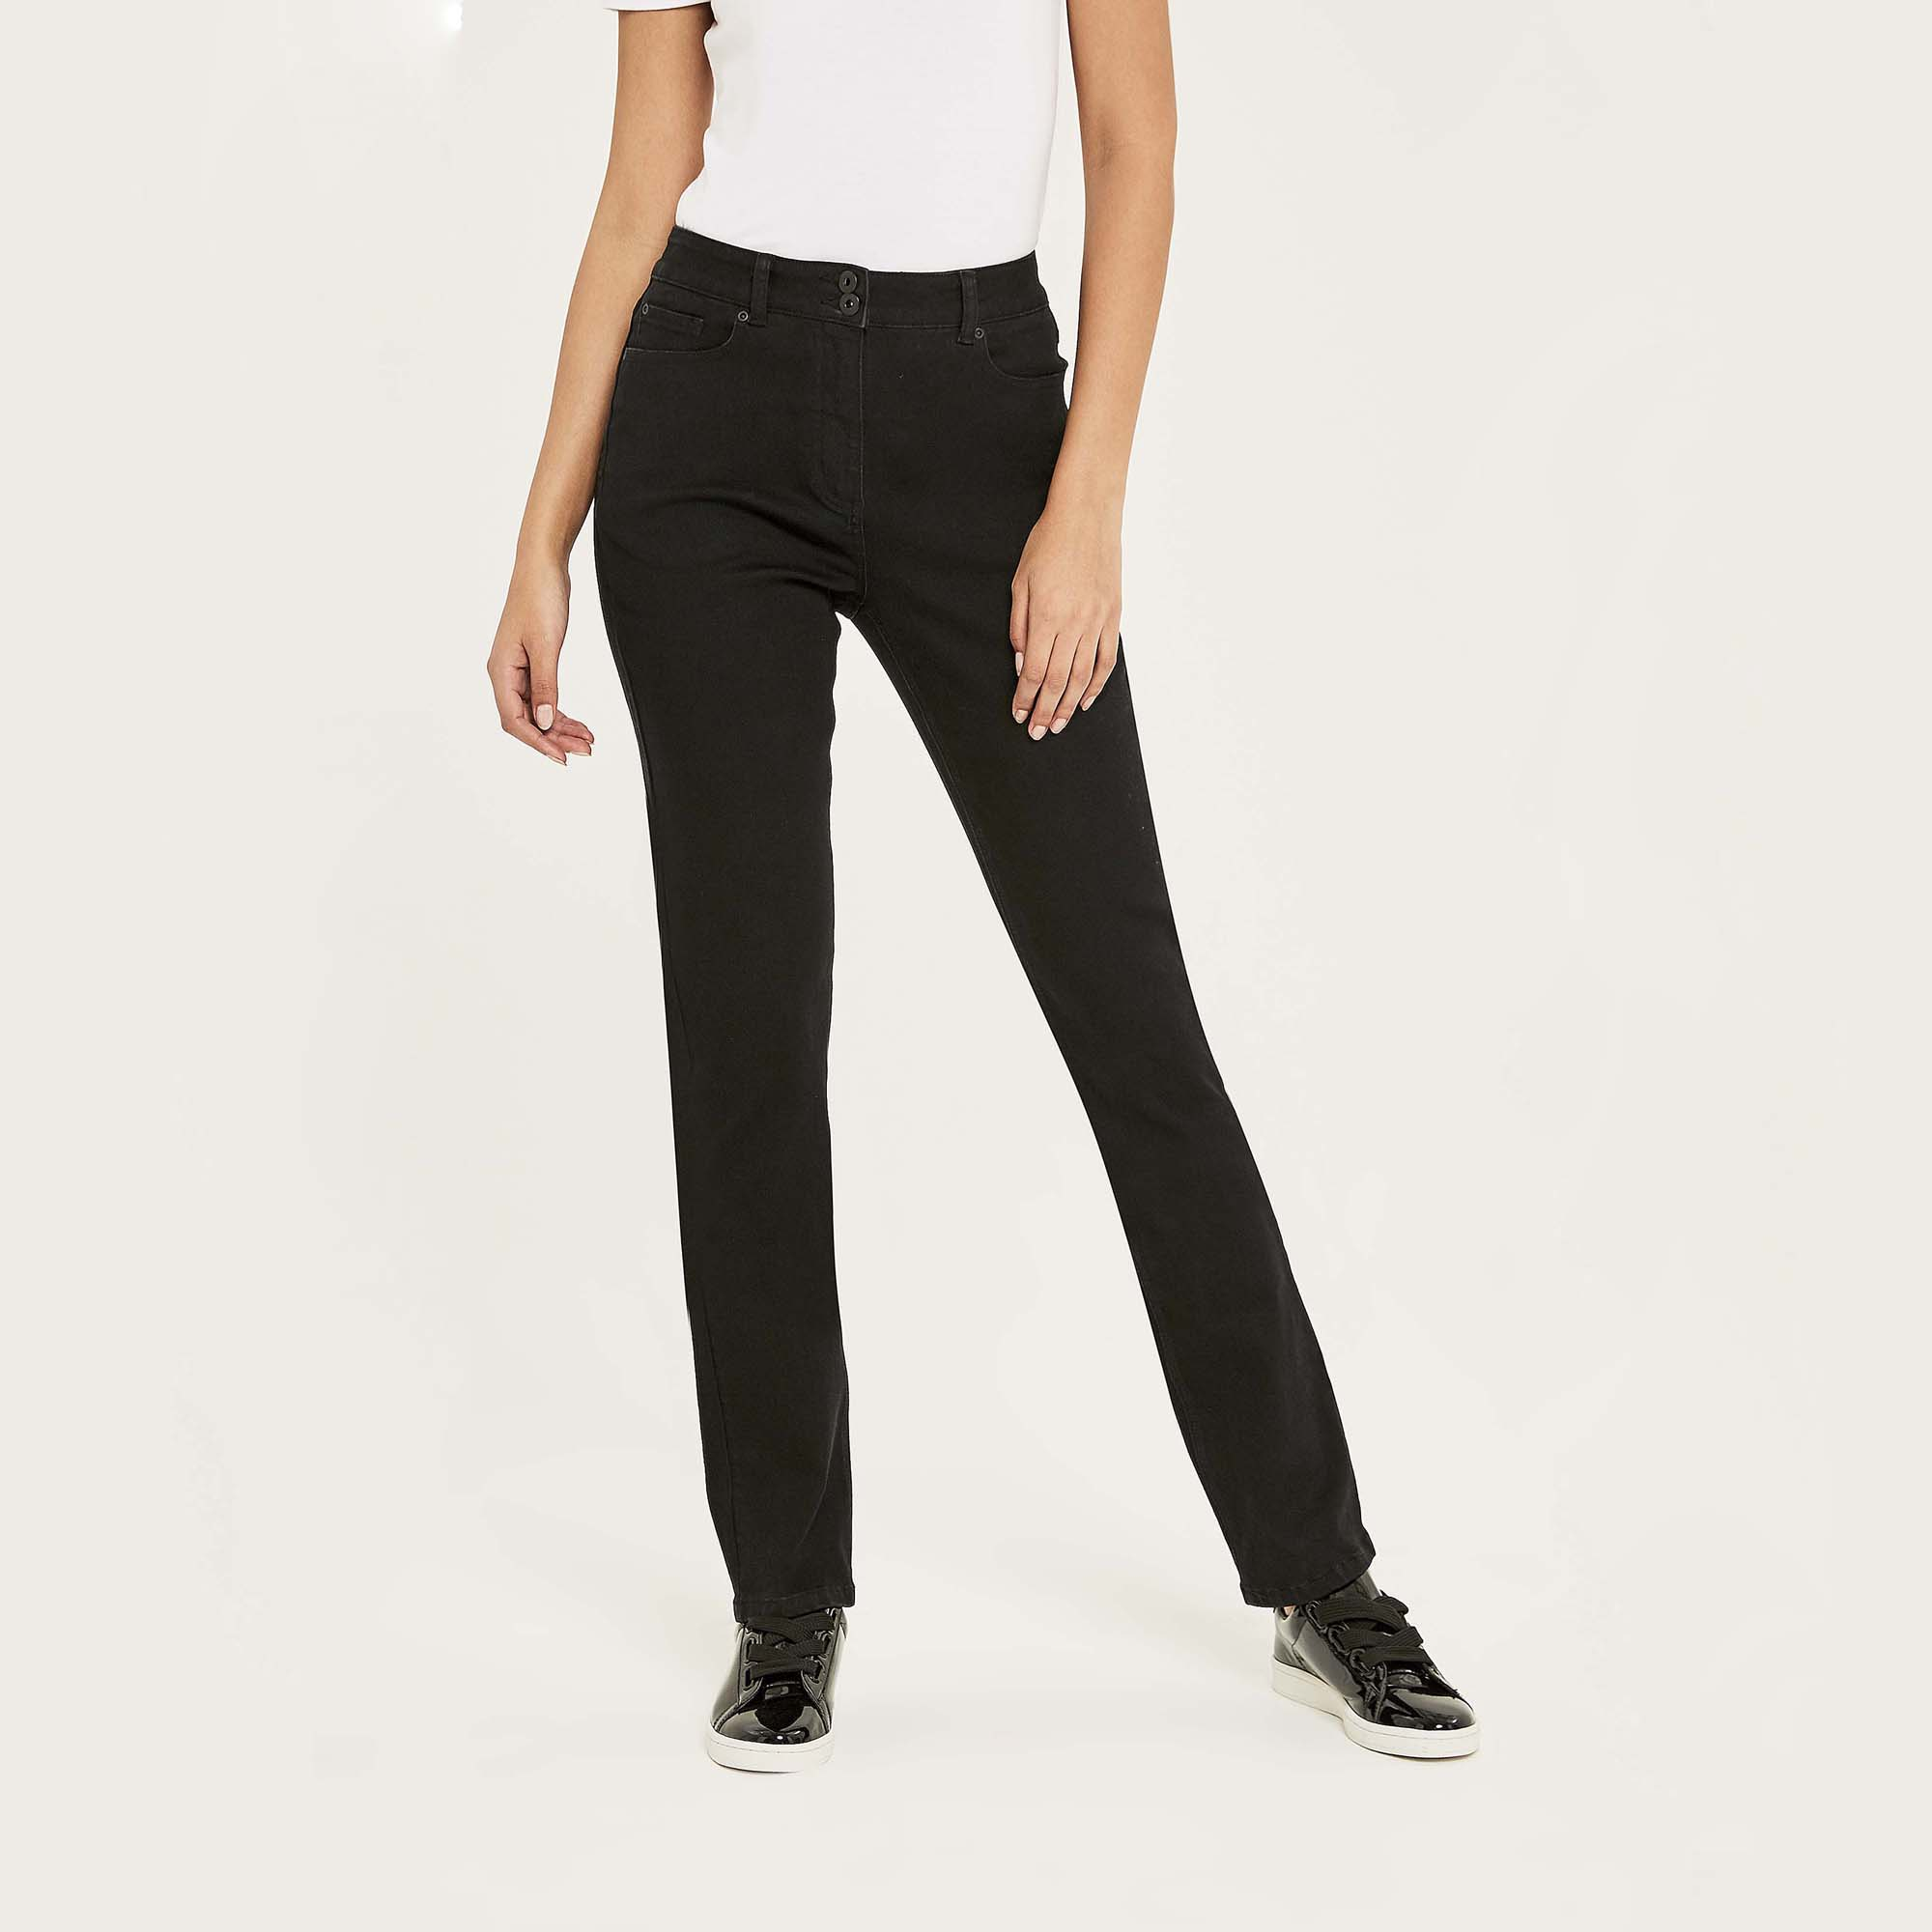 Black Straight Leg High Rise Jean